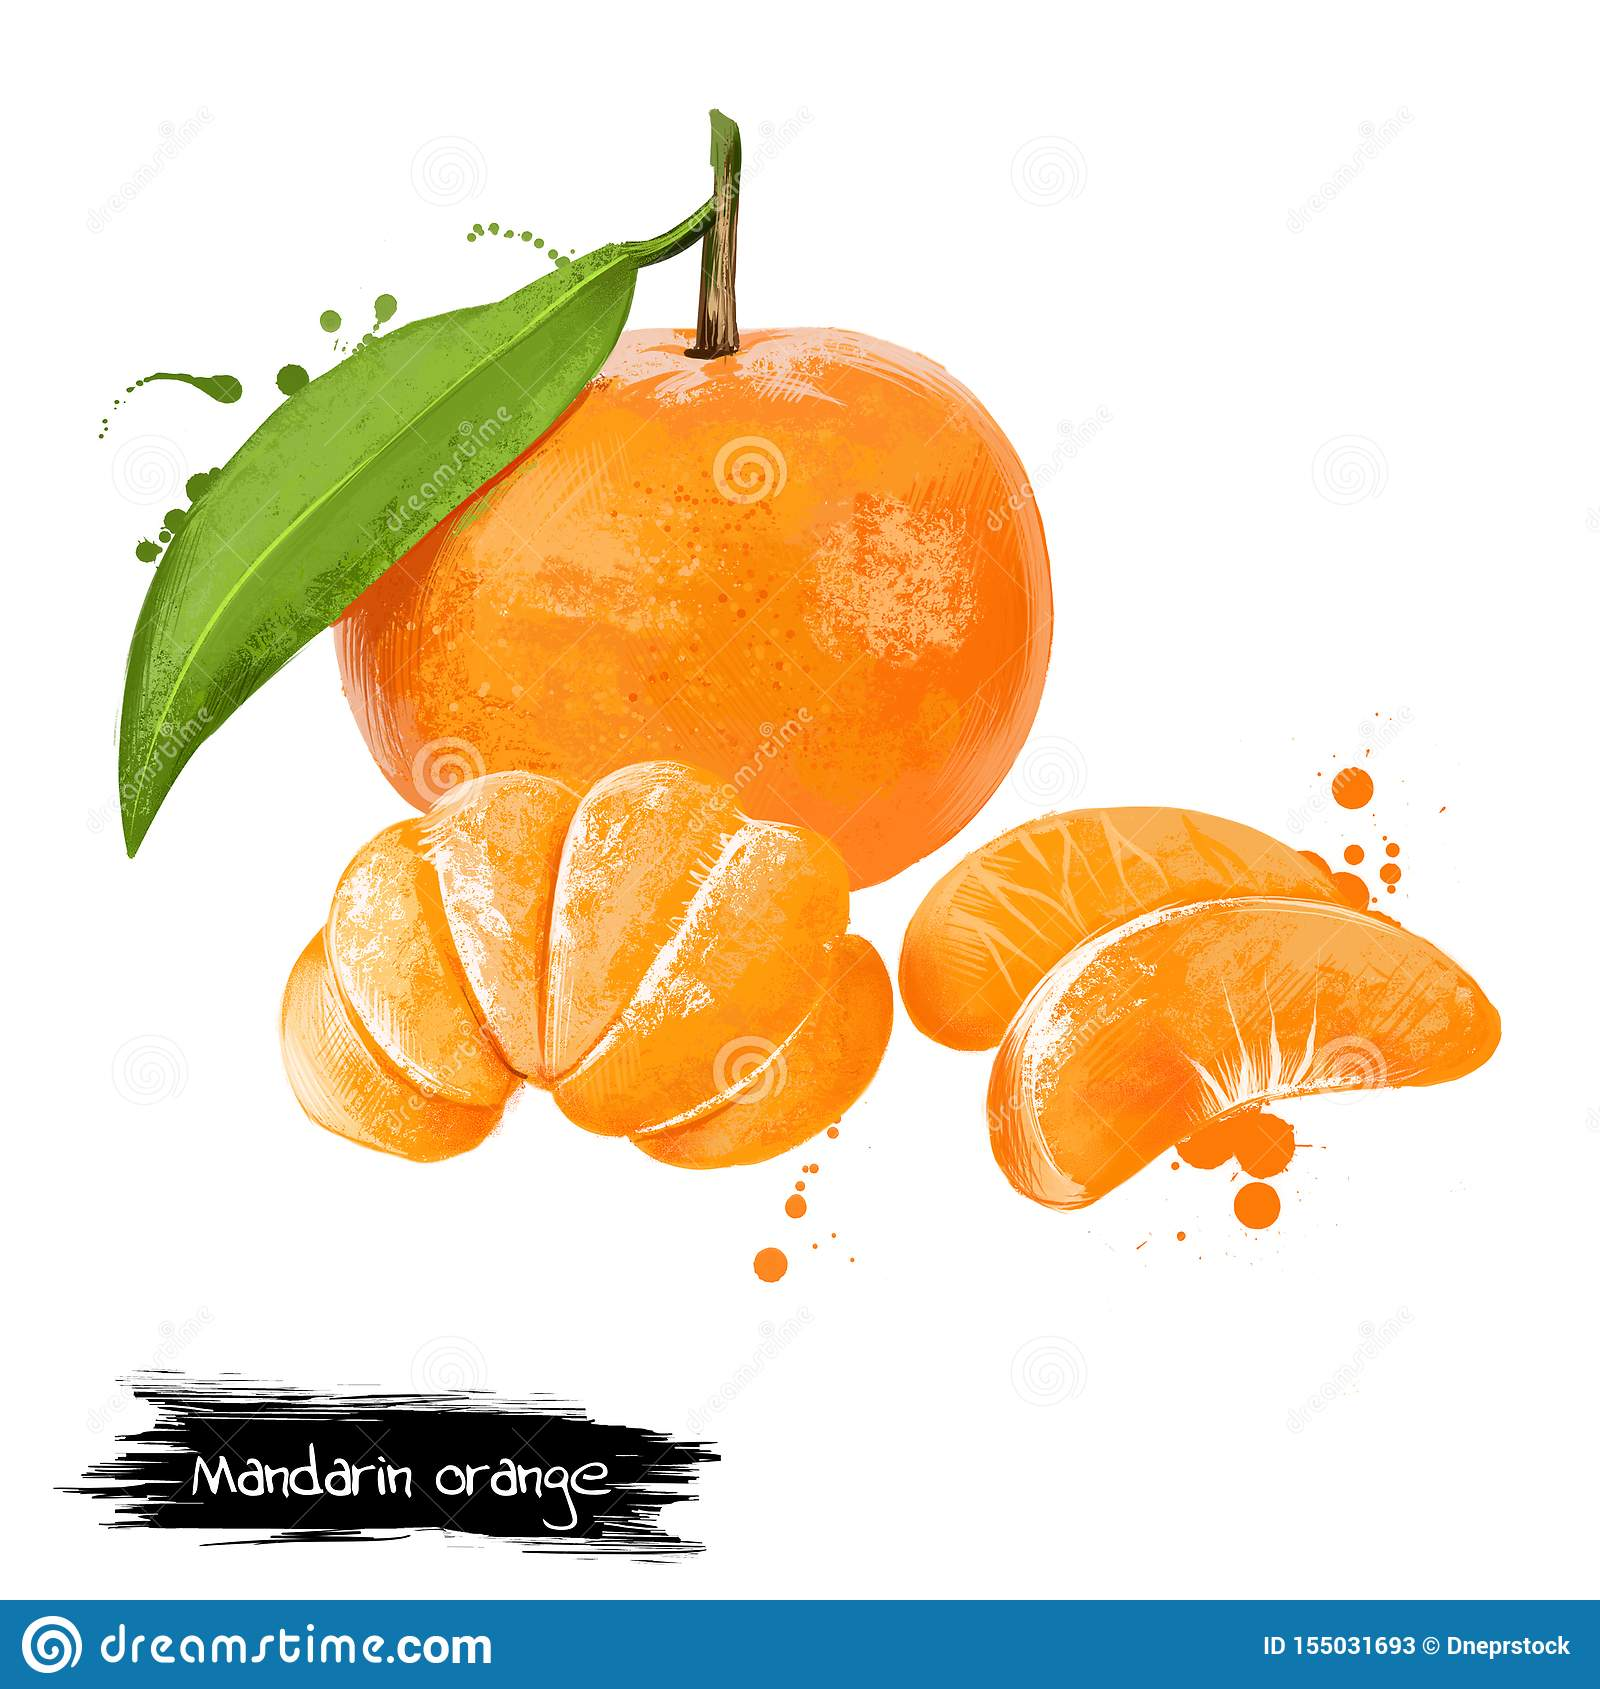 Mandarin, tangerine citrus fruit isolated on white background